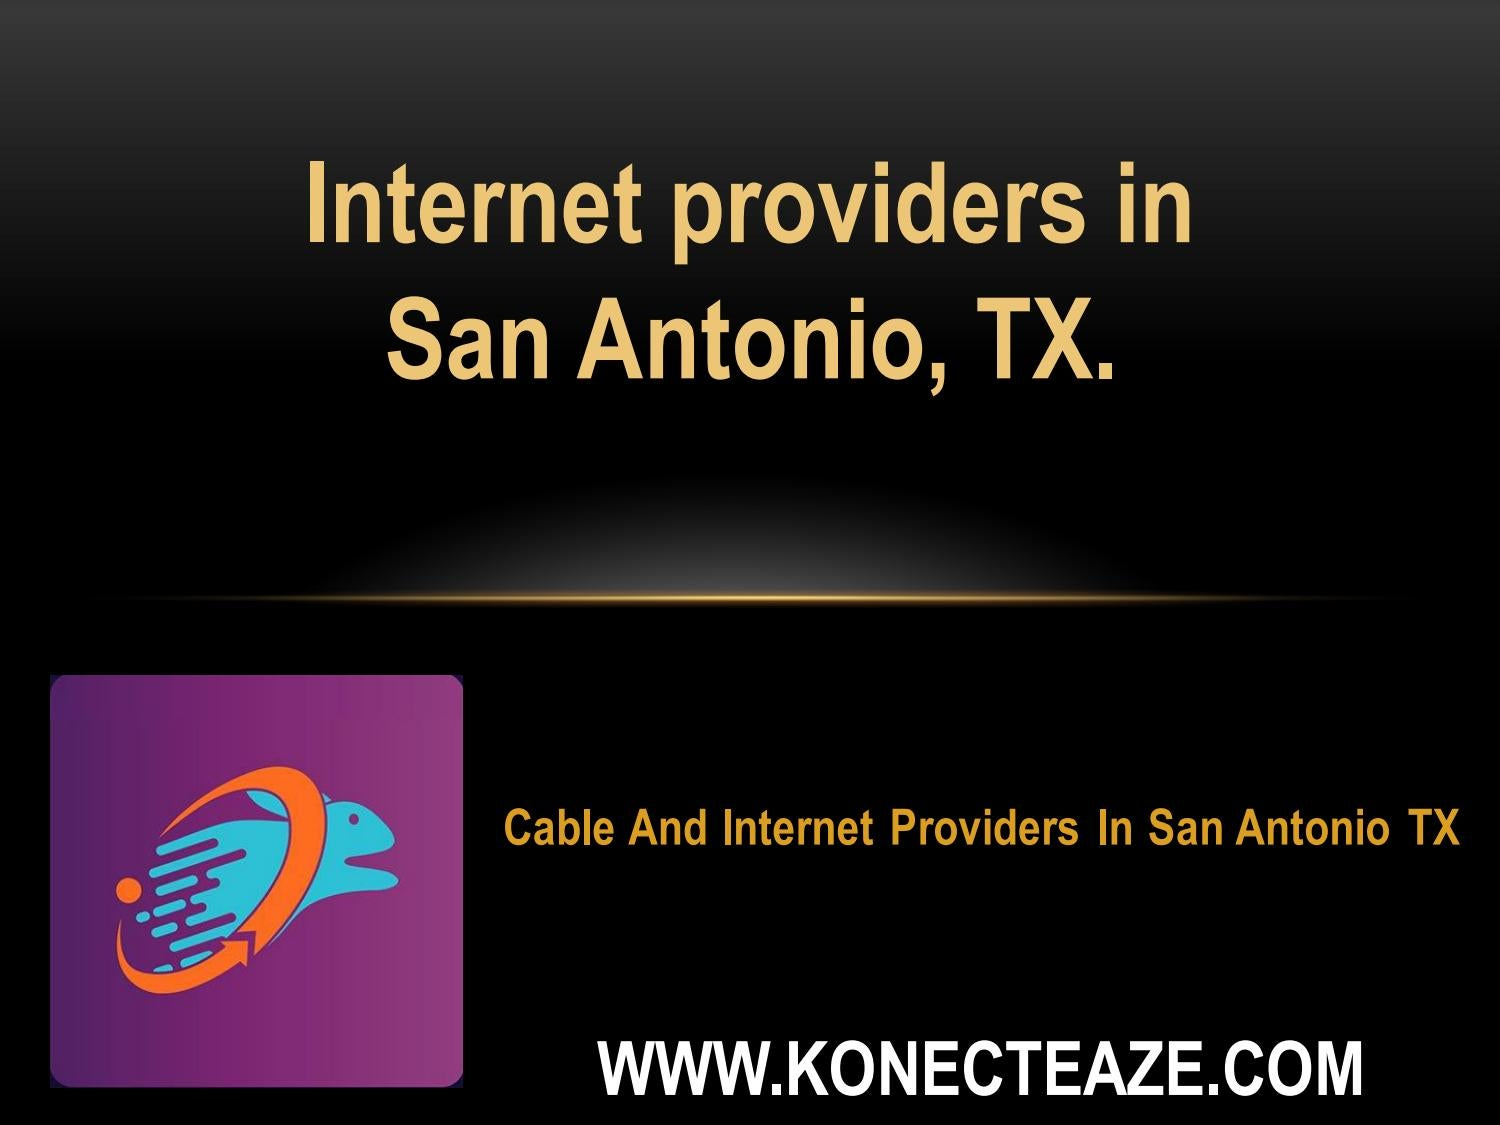 Cable Internet Providers >> Cable And Internet Providers In San Antonio Tx Konect Eaze